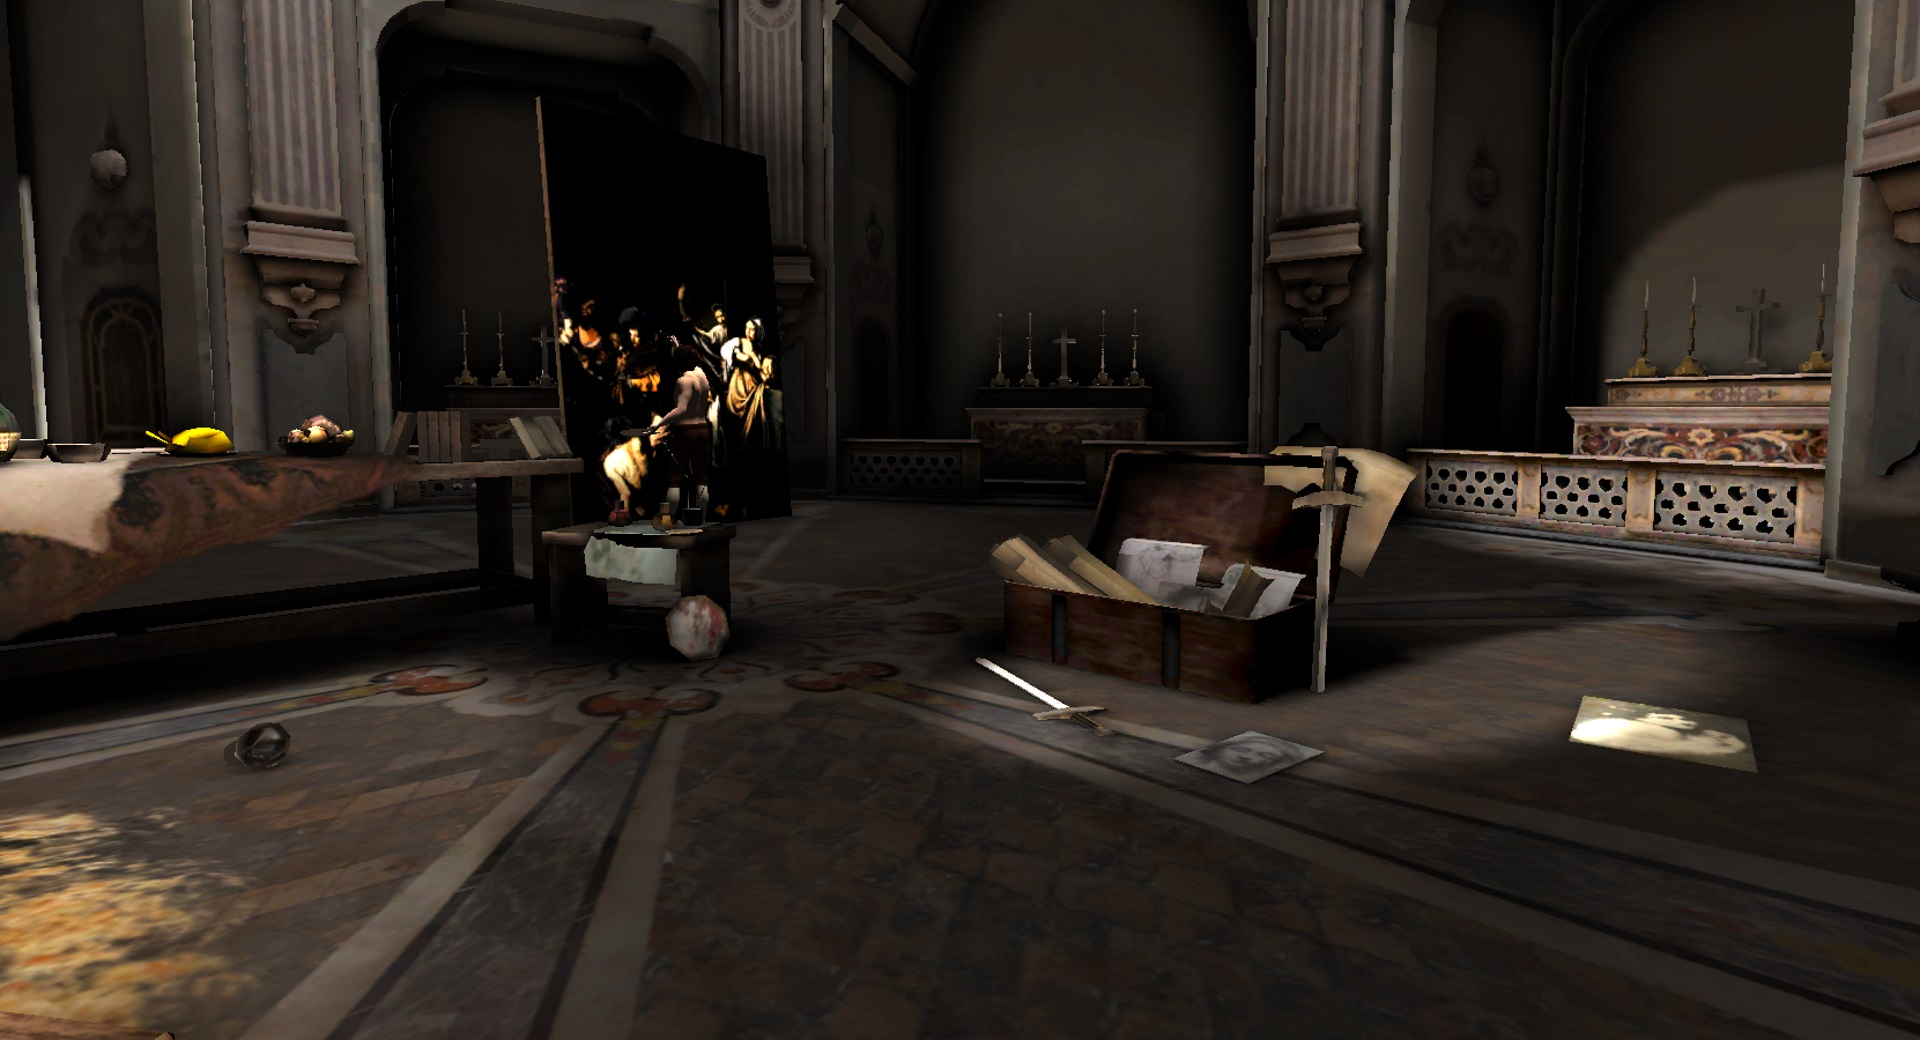 Virtual Reality (GearVR) - Caravaggio painting - ART AND CULTURAL HERITAGE